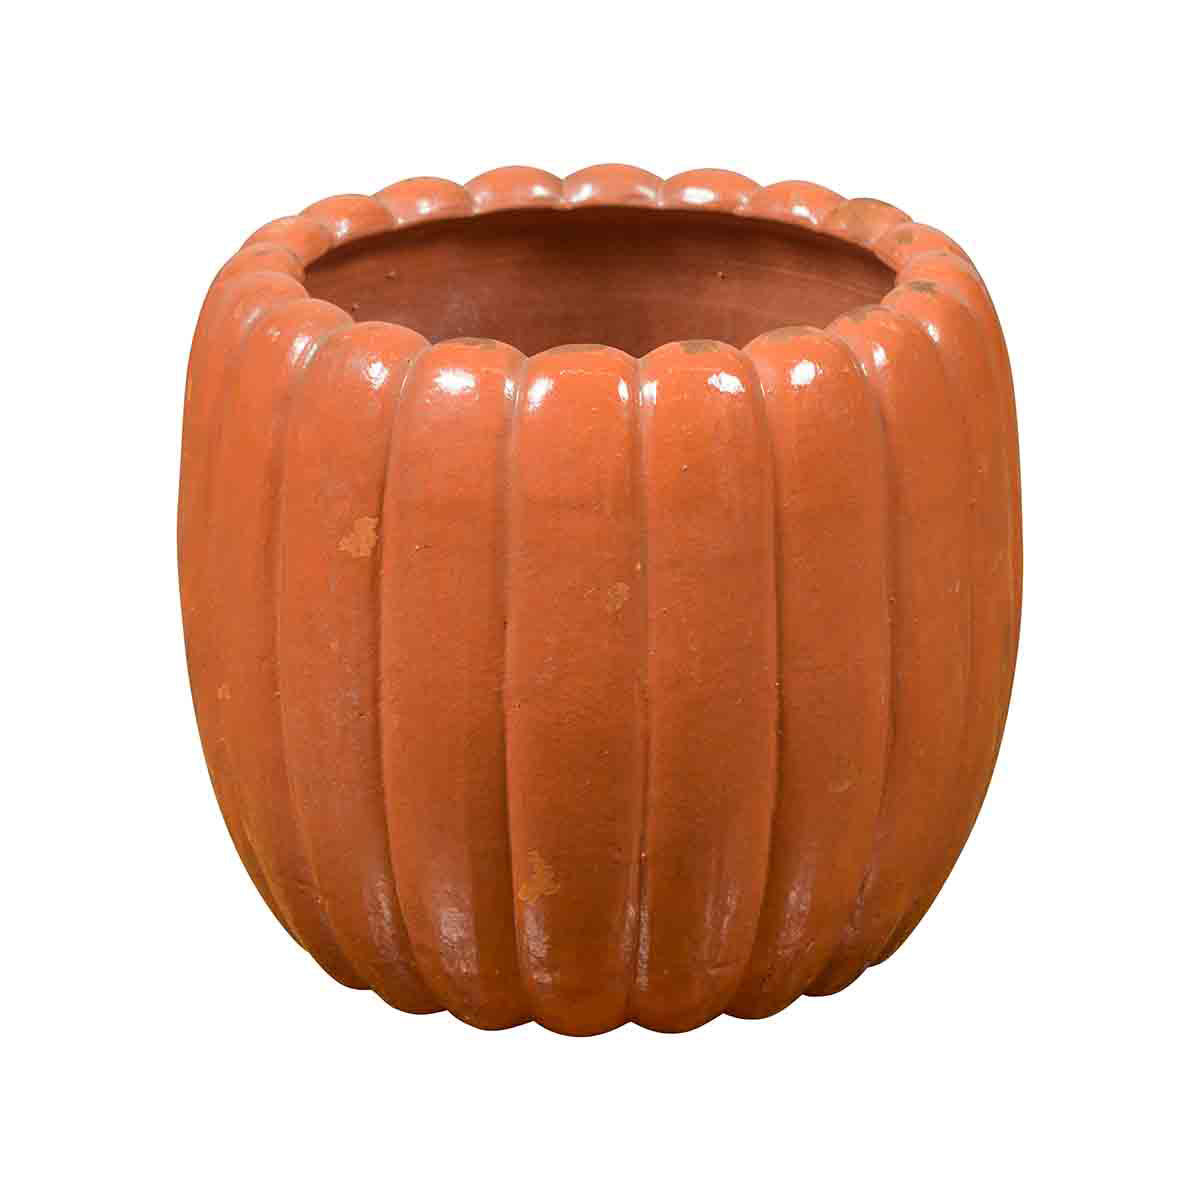 Japanese Taishō Period Handmade Coral Colored Pumpkin Shaped Planter